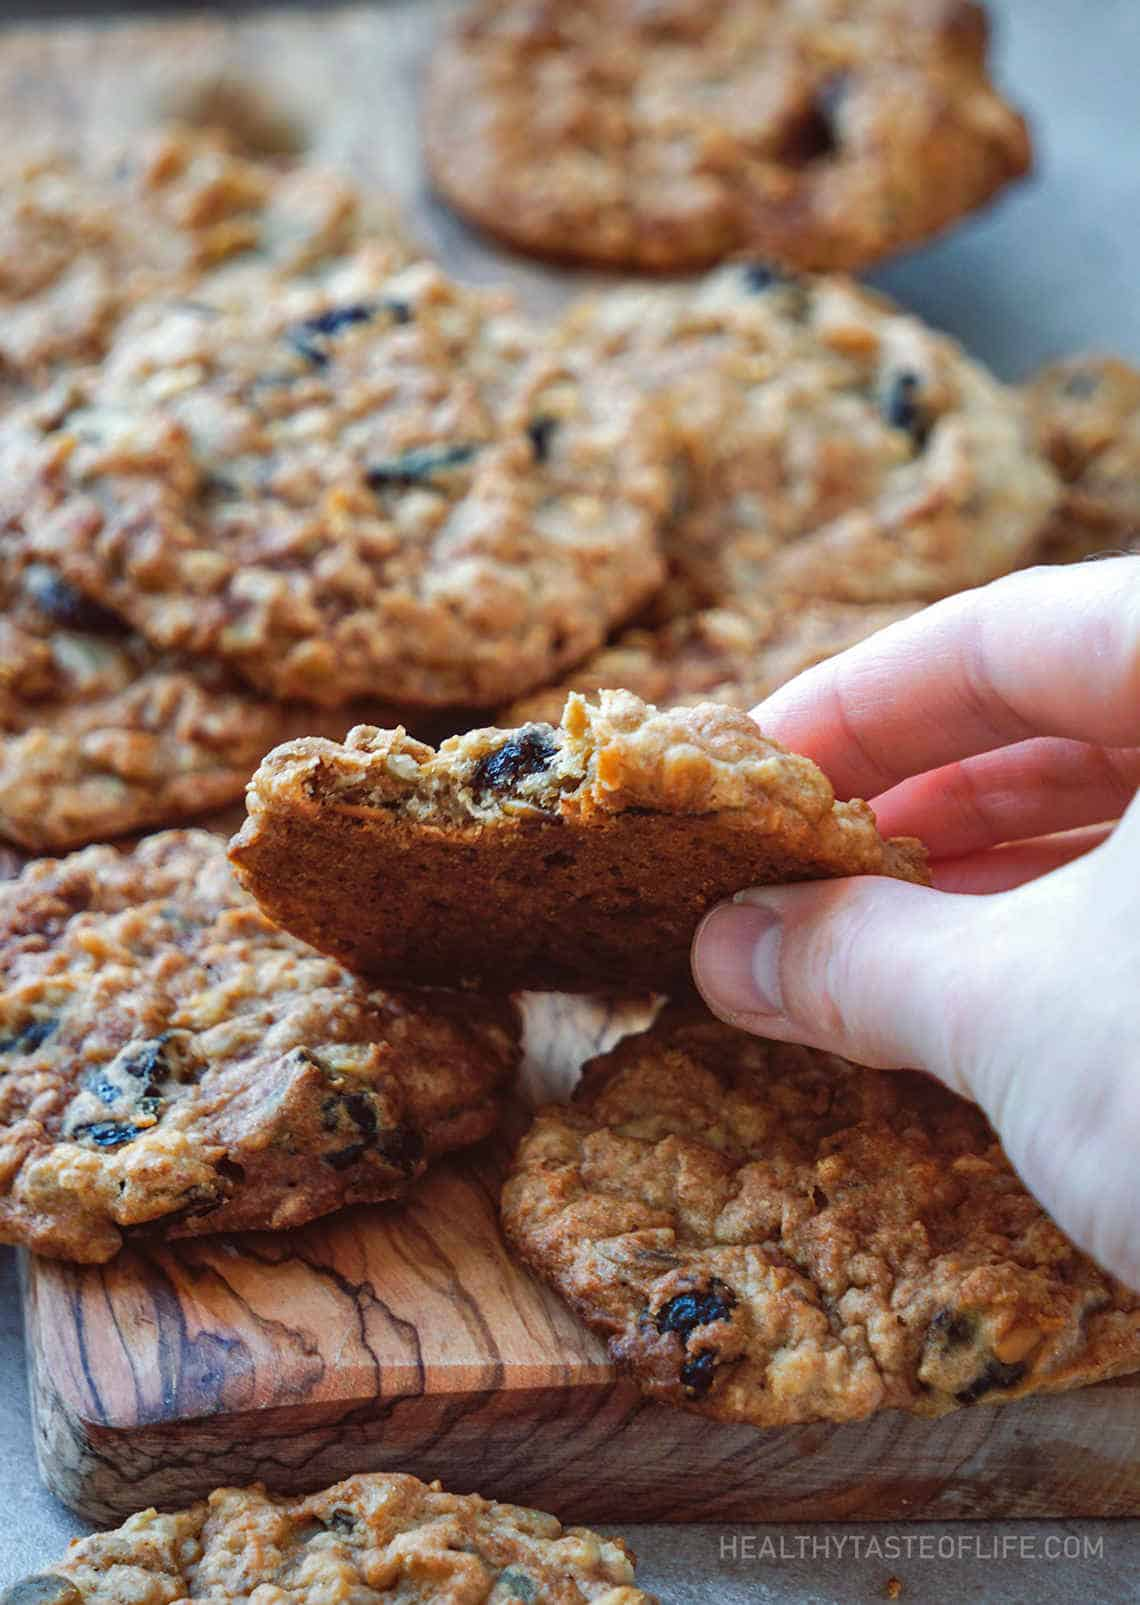 Healthy oatmeal cookies (vegan gluten free with applesauce) seeds, dried fruit held in a hand.